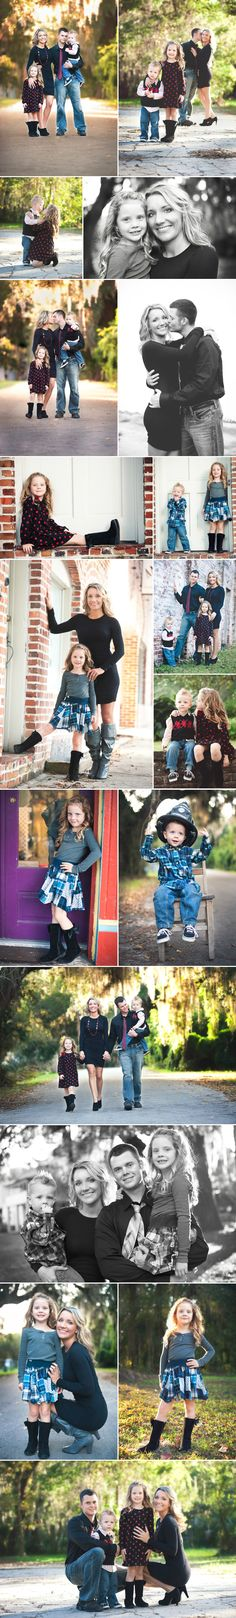 Gainesville, FL Family Photographer | Micanopy J Family Session | Manic Mother Photography